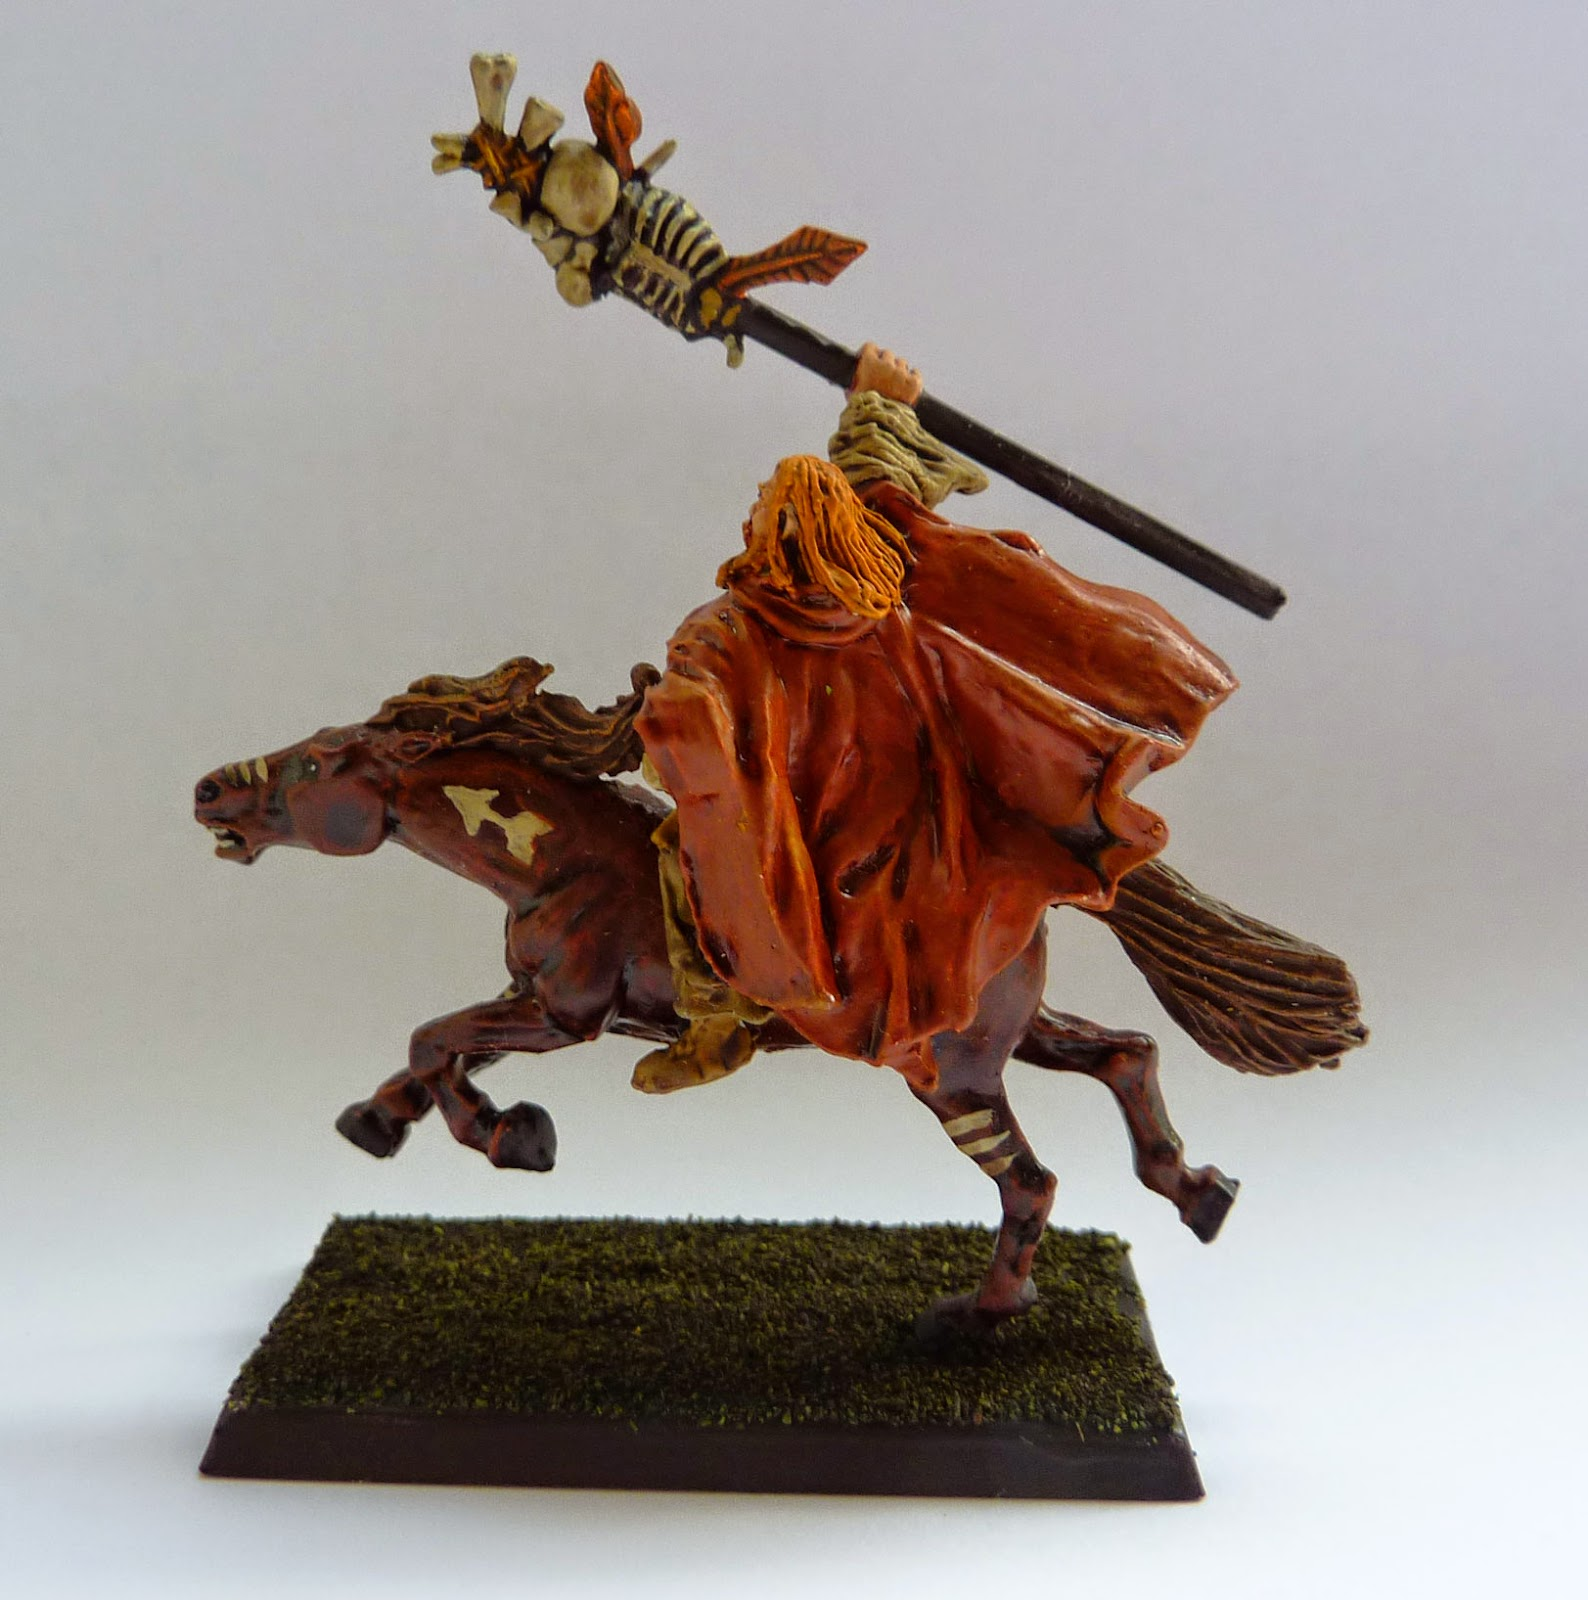 Lord of the Rings' Gandalf on Shadowfax, painted in the style of a Warhammer Empire Amber Wizard.